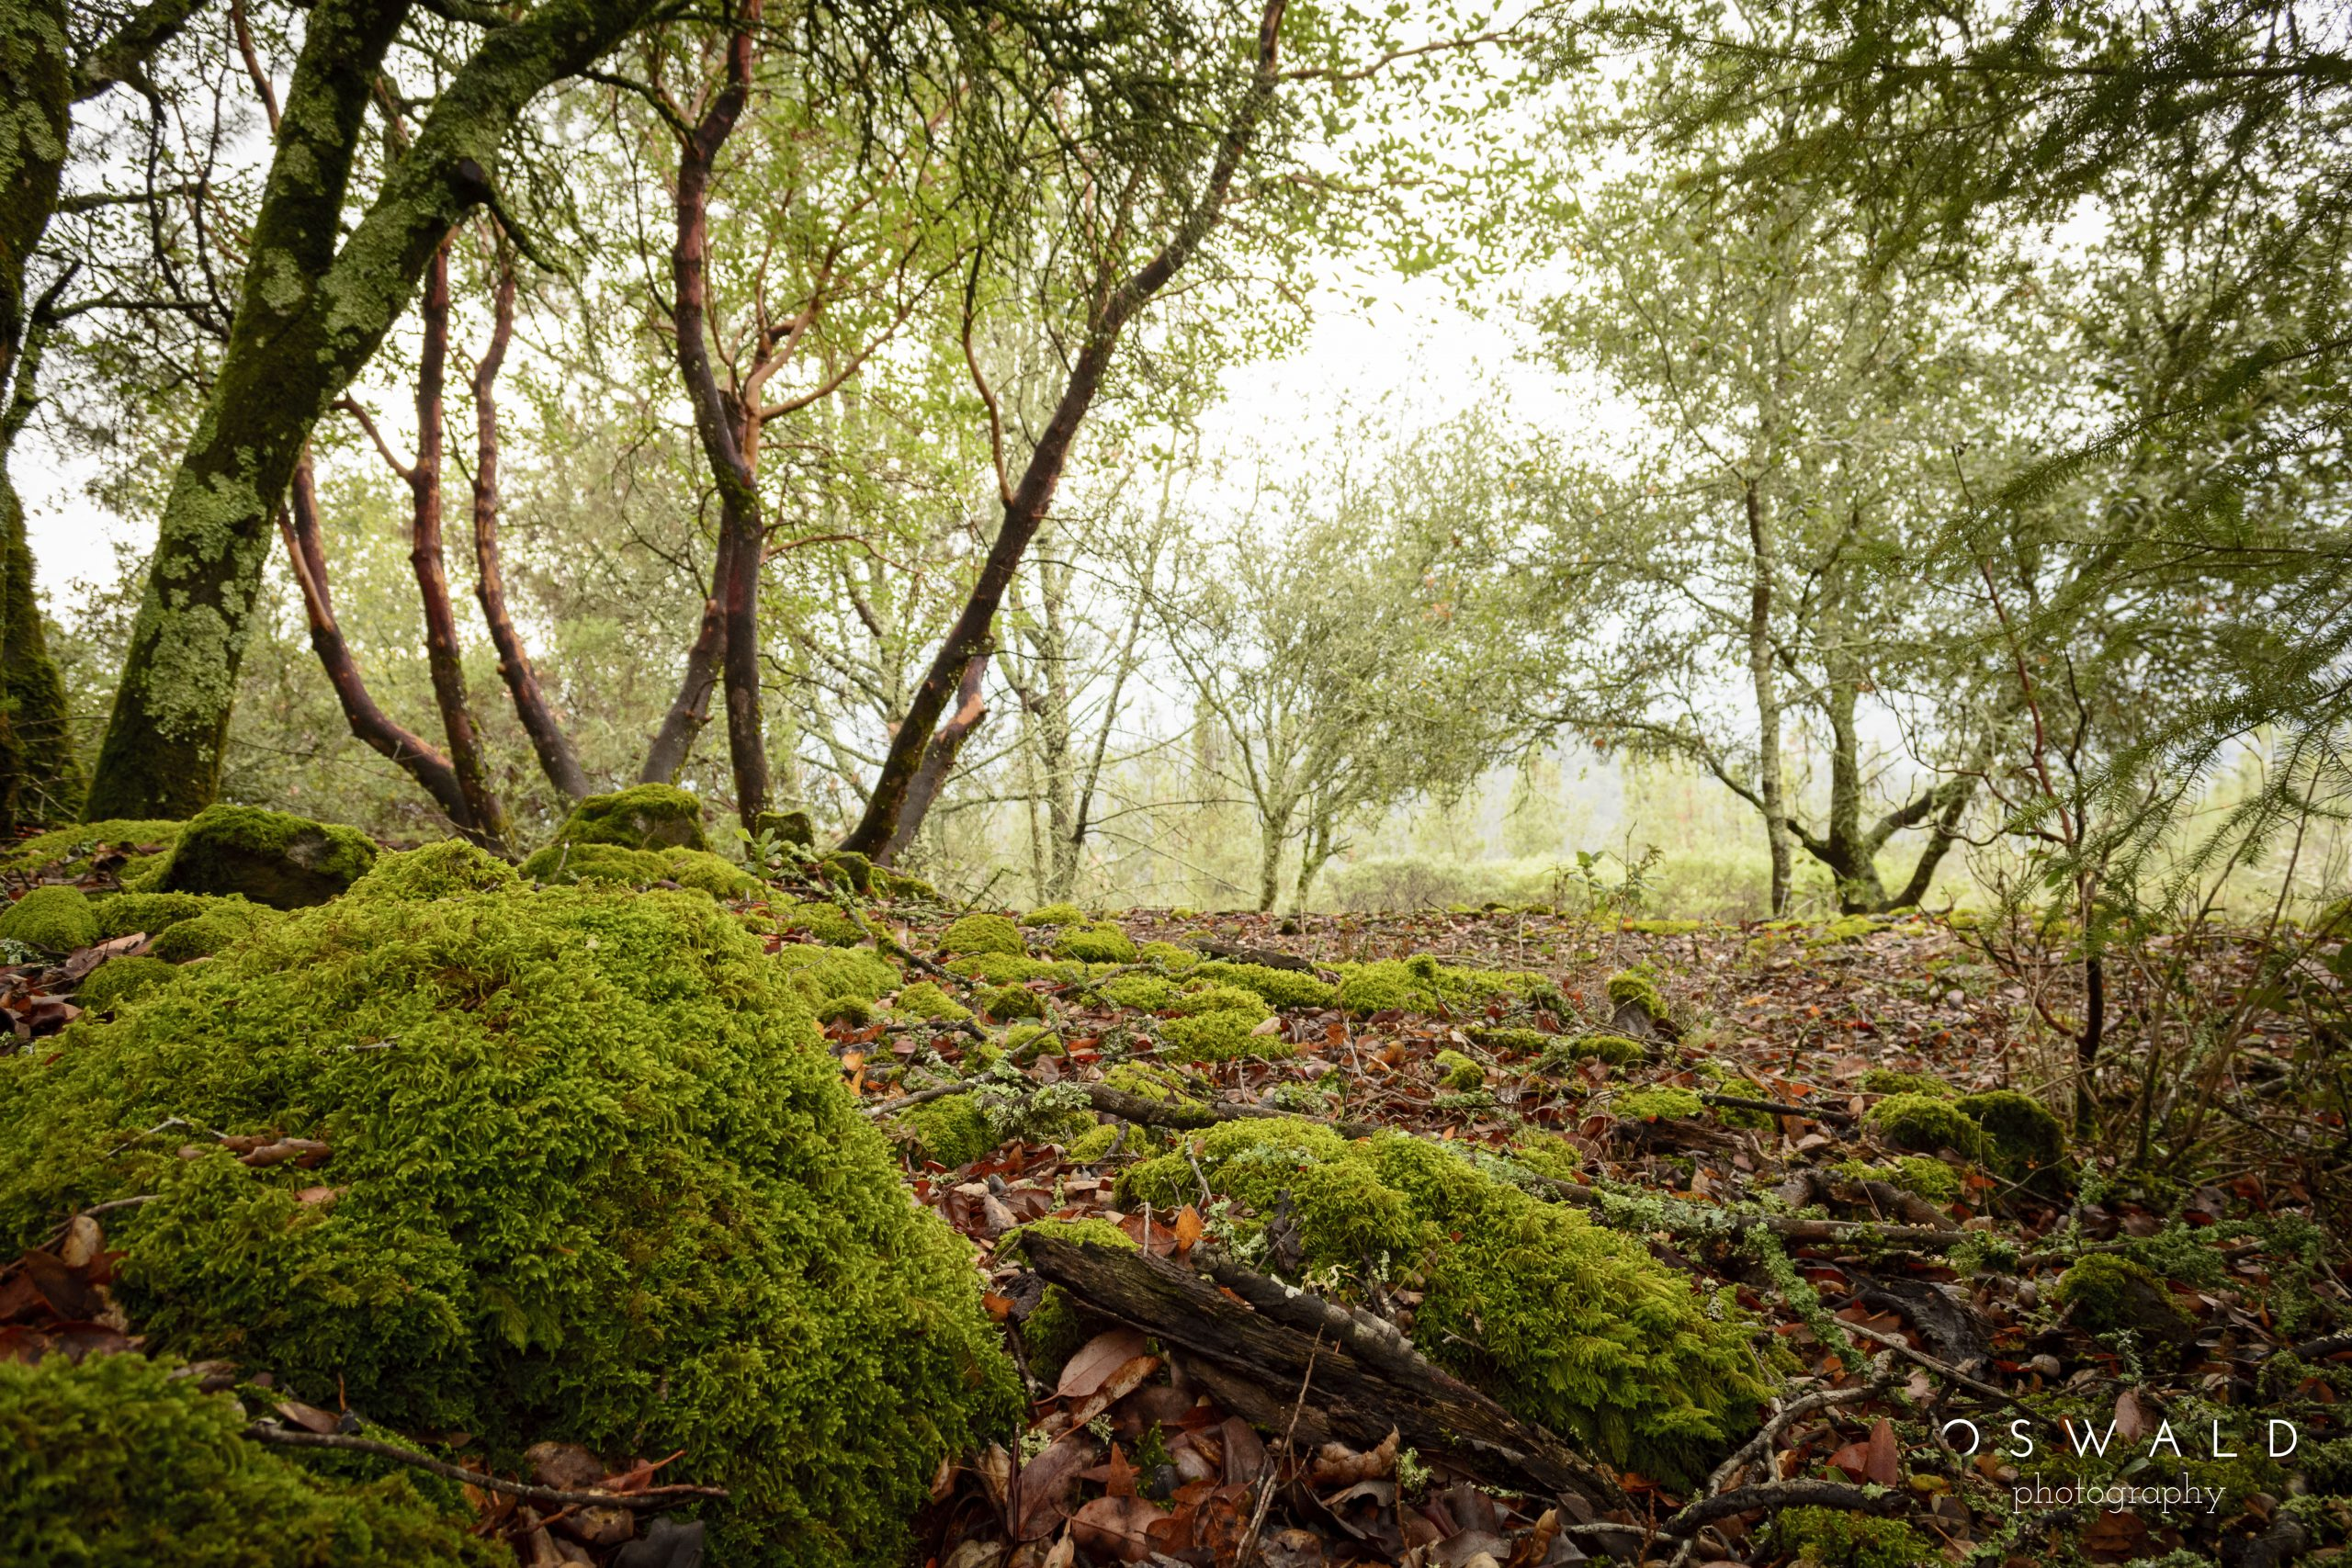 A misty landscape photograph of the woods between the Napa and Sonoma Valleys.